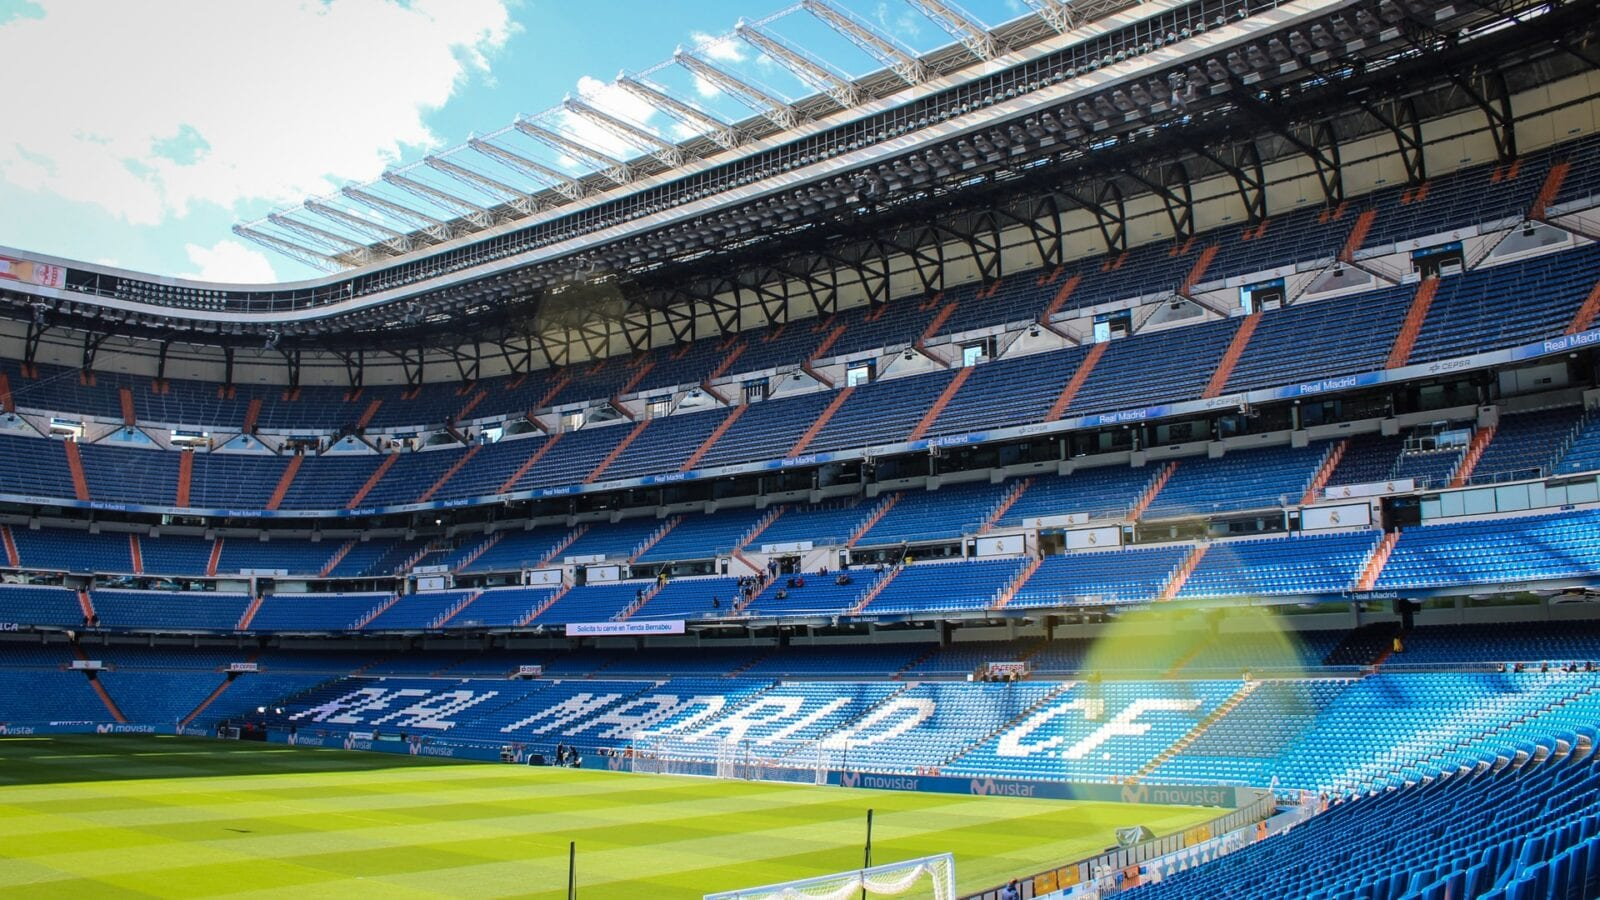 Real Madrid's Bernabeu Stadium